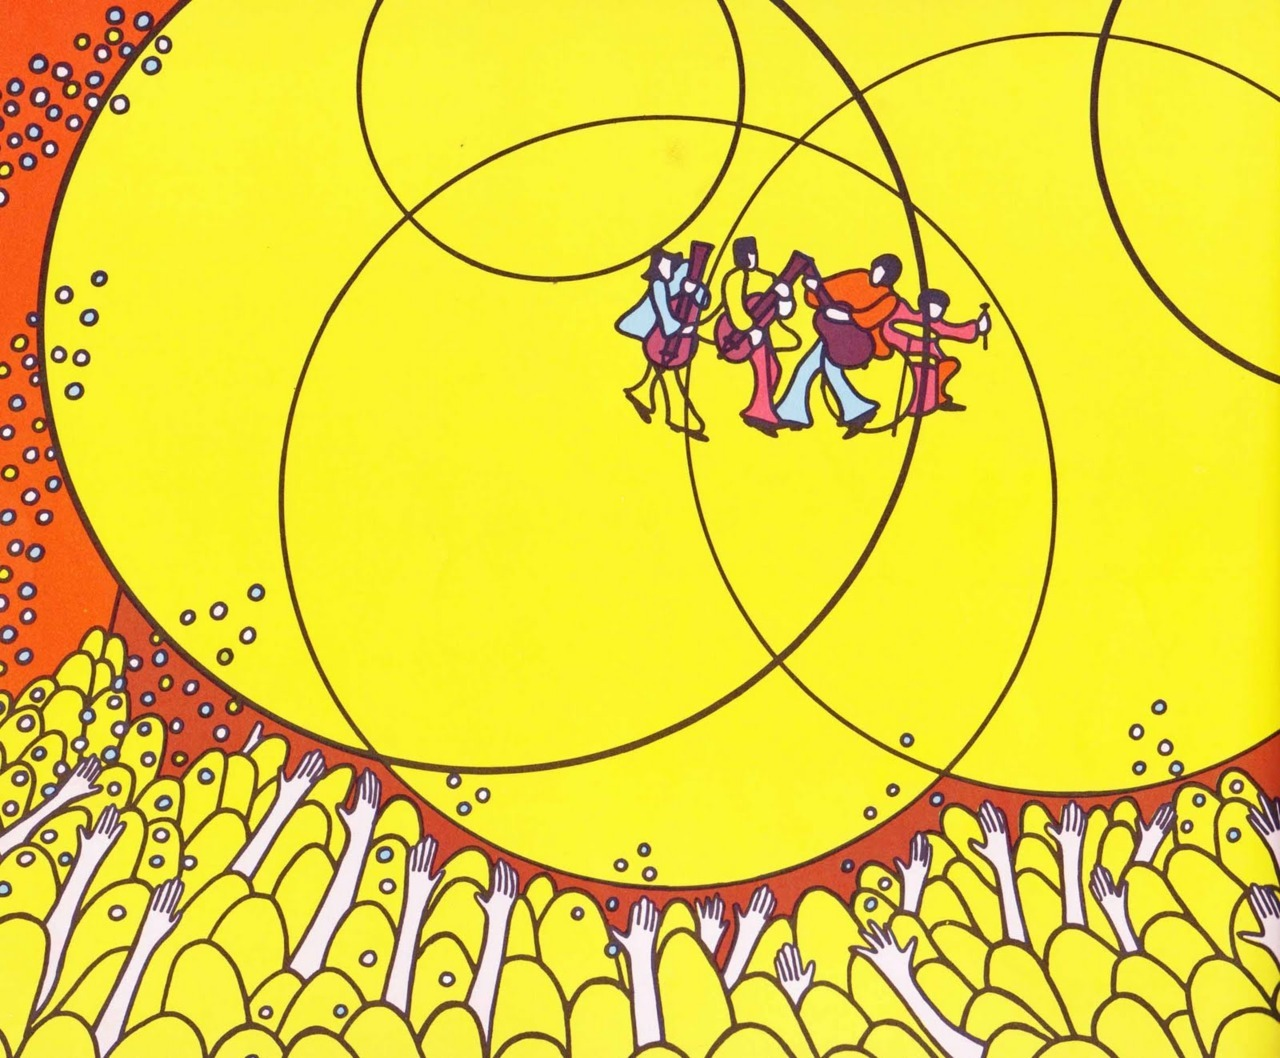 (via We Love You, Beatles: Vintage Children's Illustration Circa 1971 | Brain Pickings)